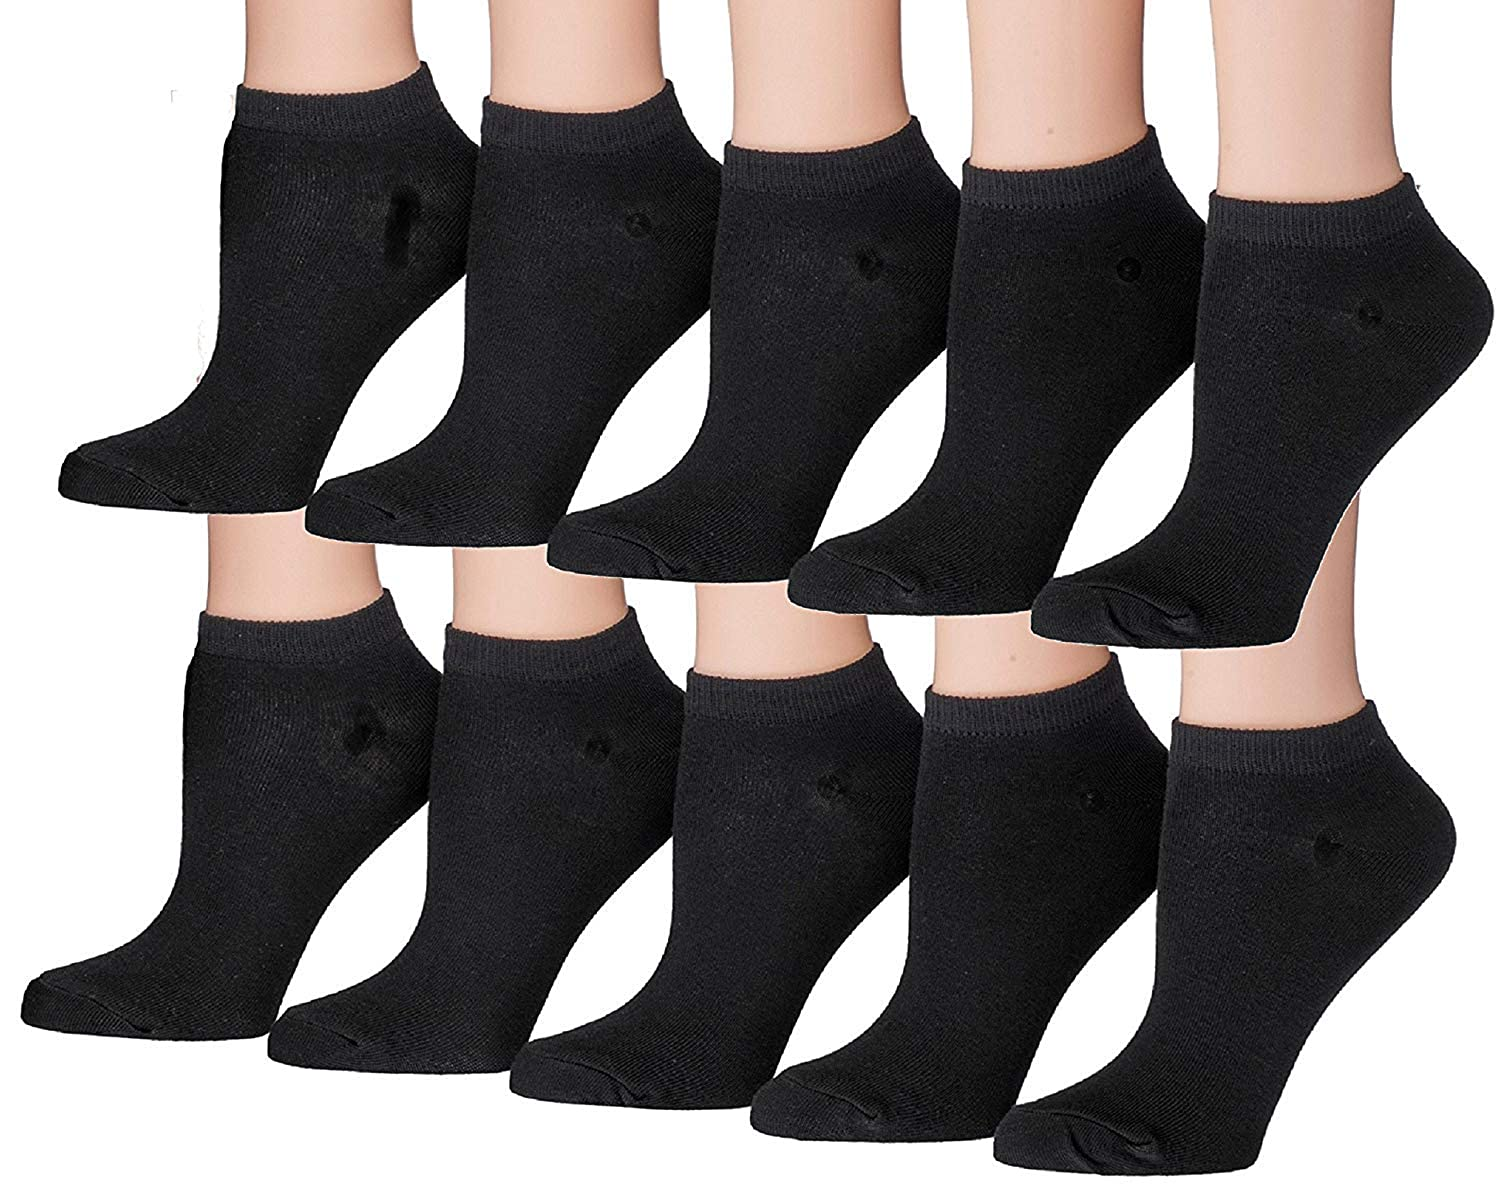 Tipi Toe Boys Classy Lightweight Low Cut No Show Socks 10 or 20 pairs